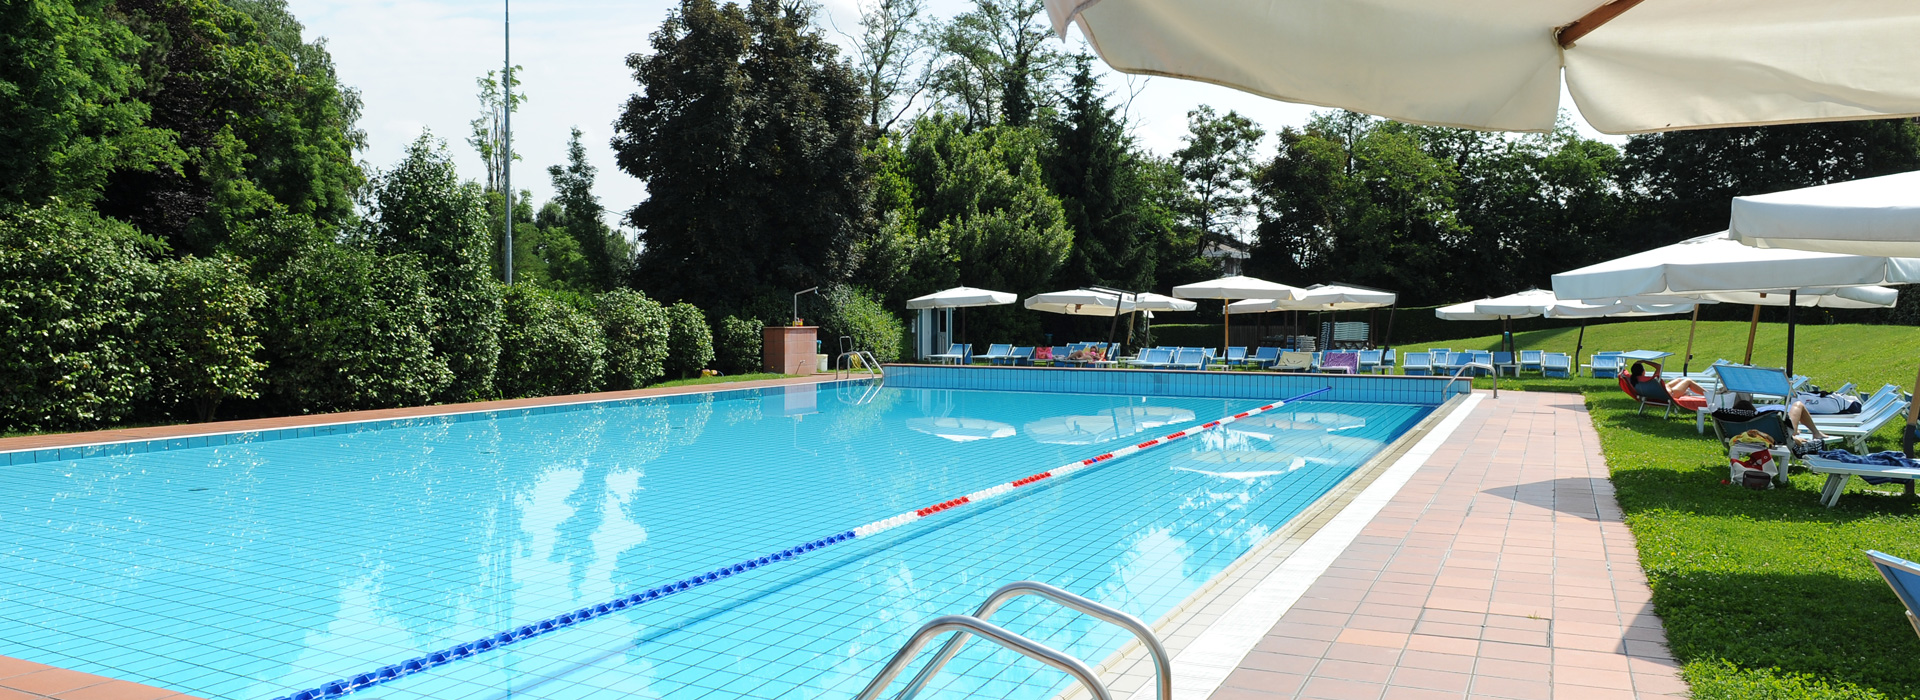 Nuoto o relax<br>in un ambiente<br><b>tranquillo</b></span>